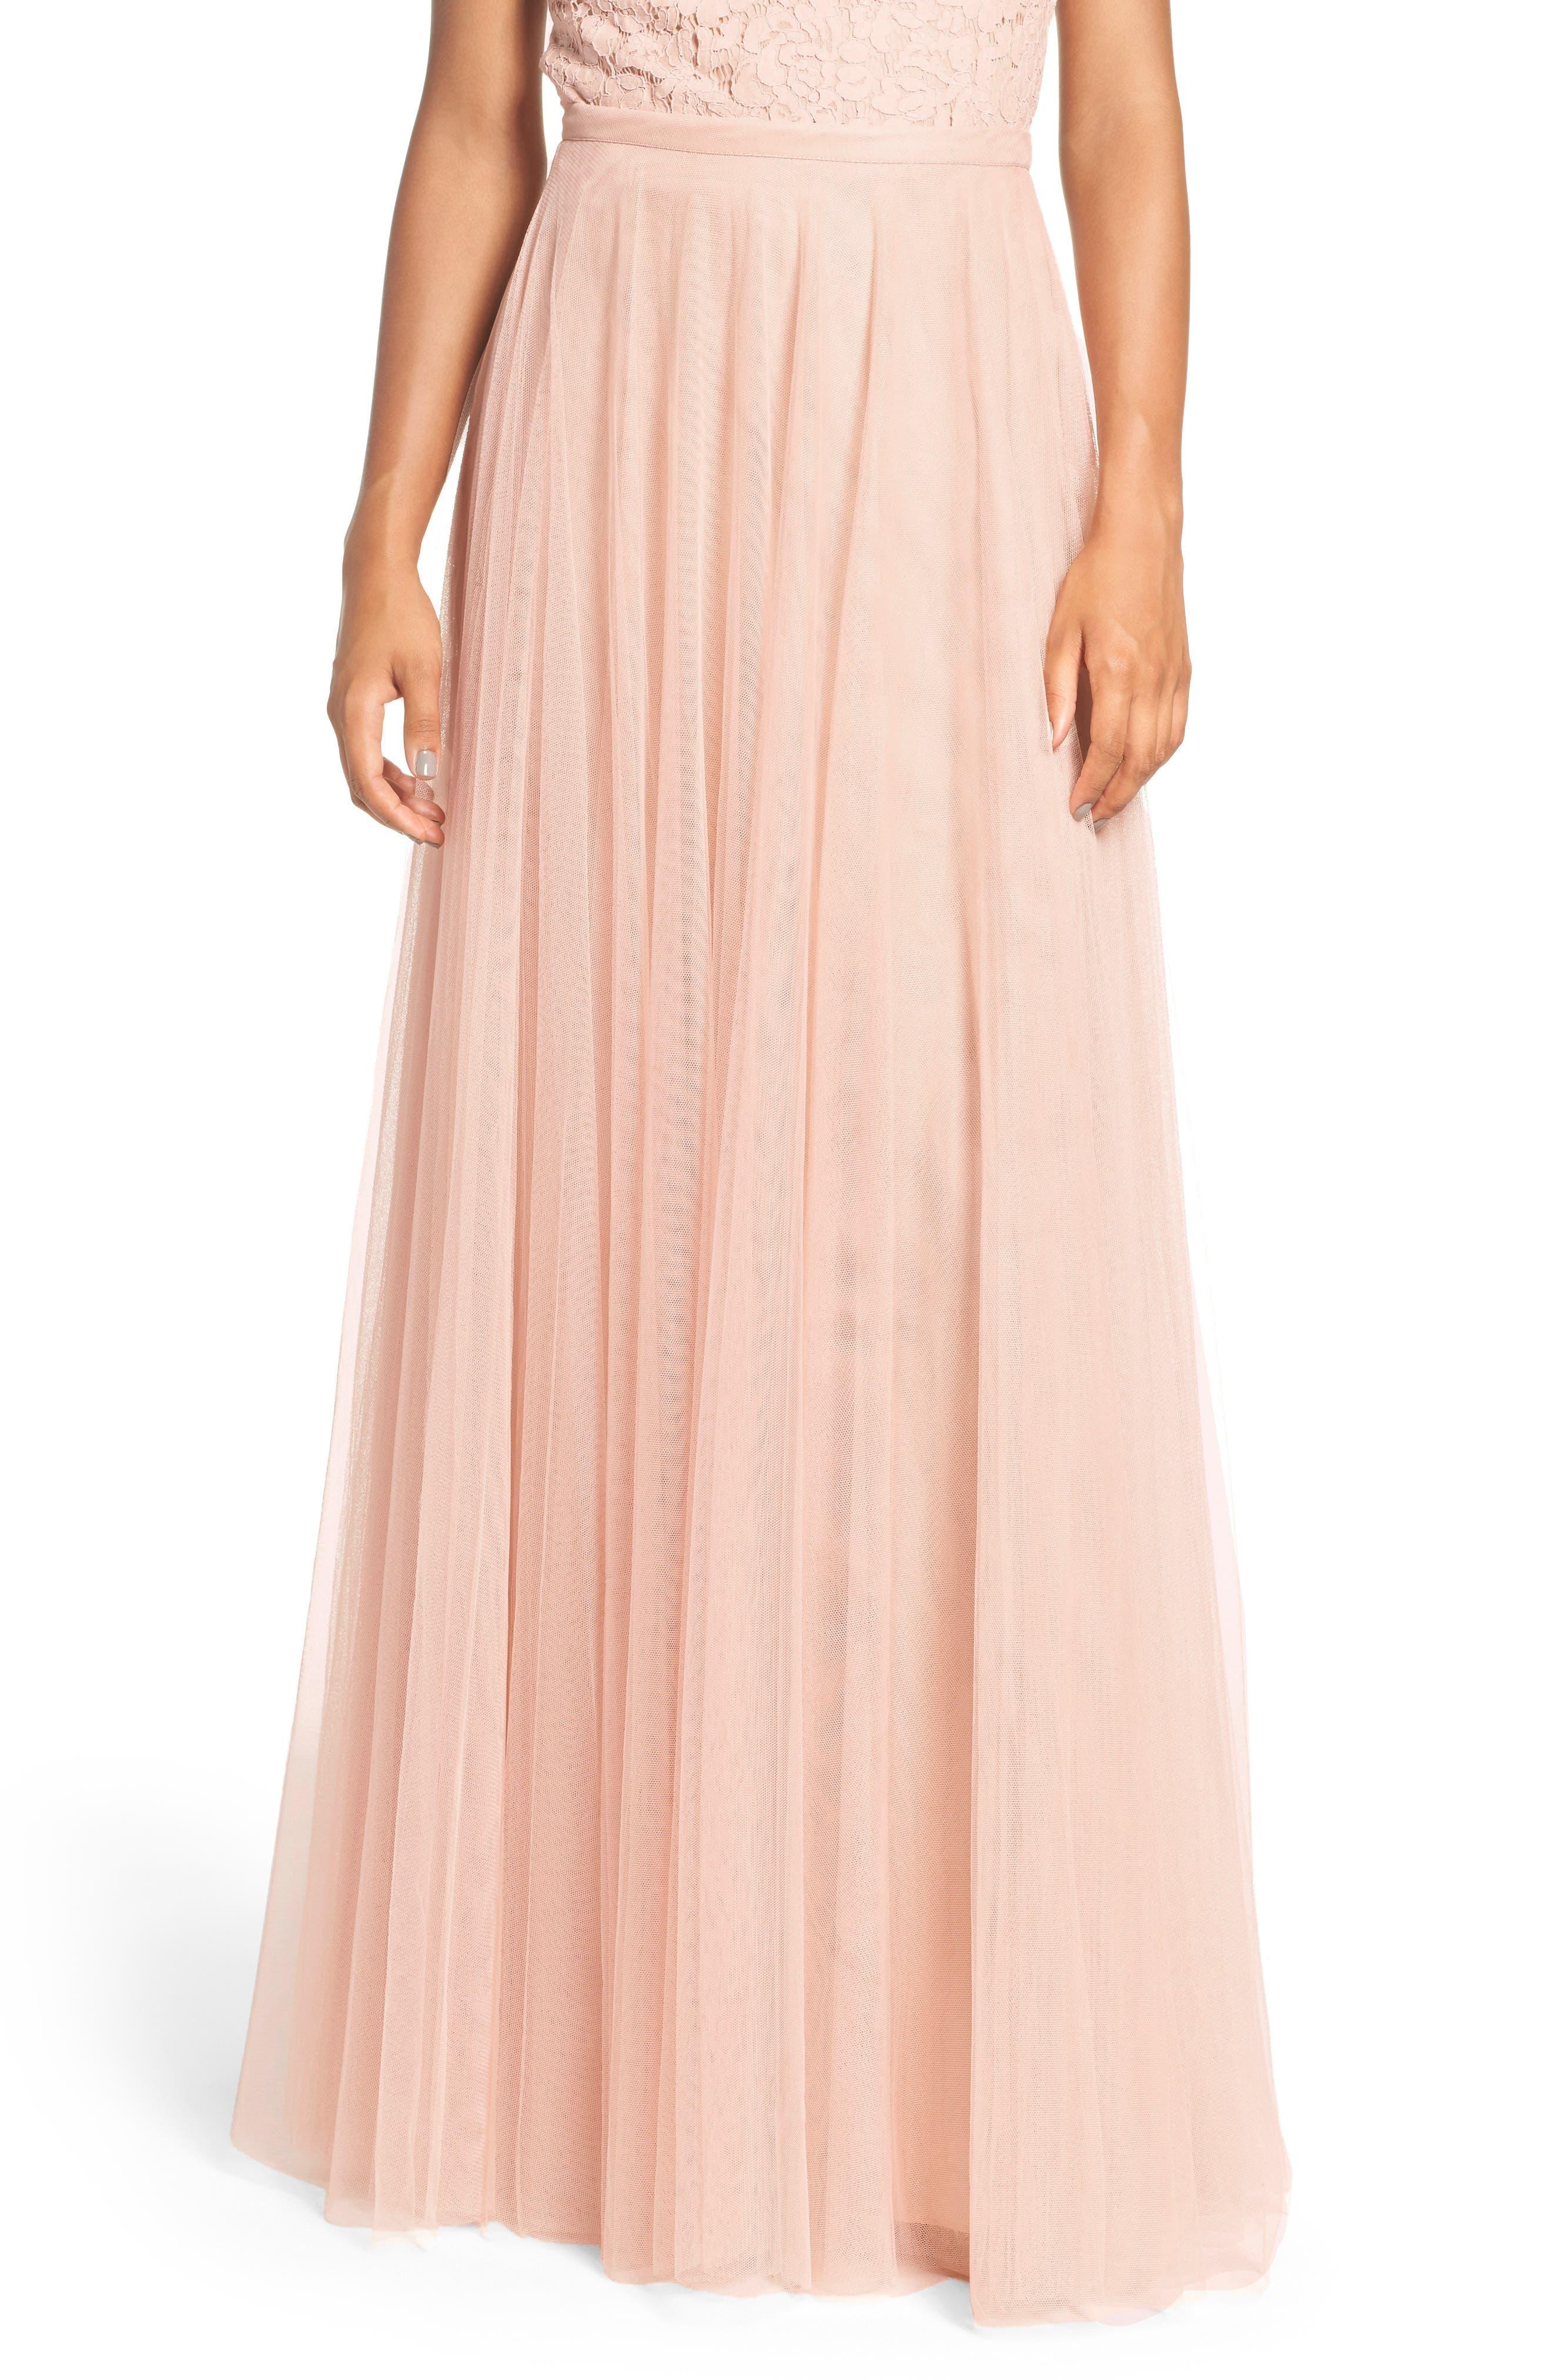 Winslow Long Tulle A-Line Skirt,                             Alternate thumbnail 2, color,                             CAMEO PINK